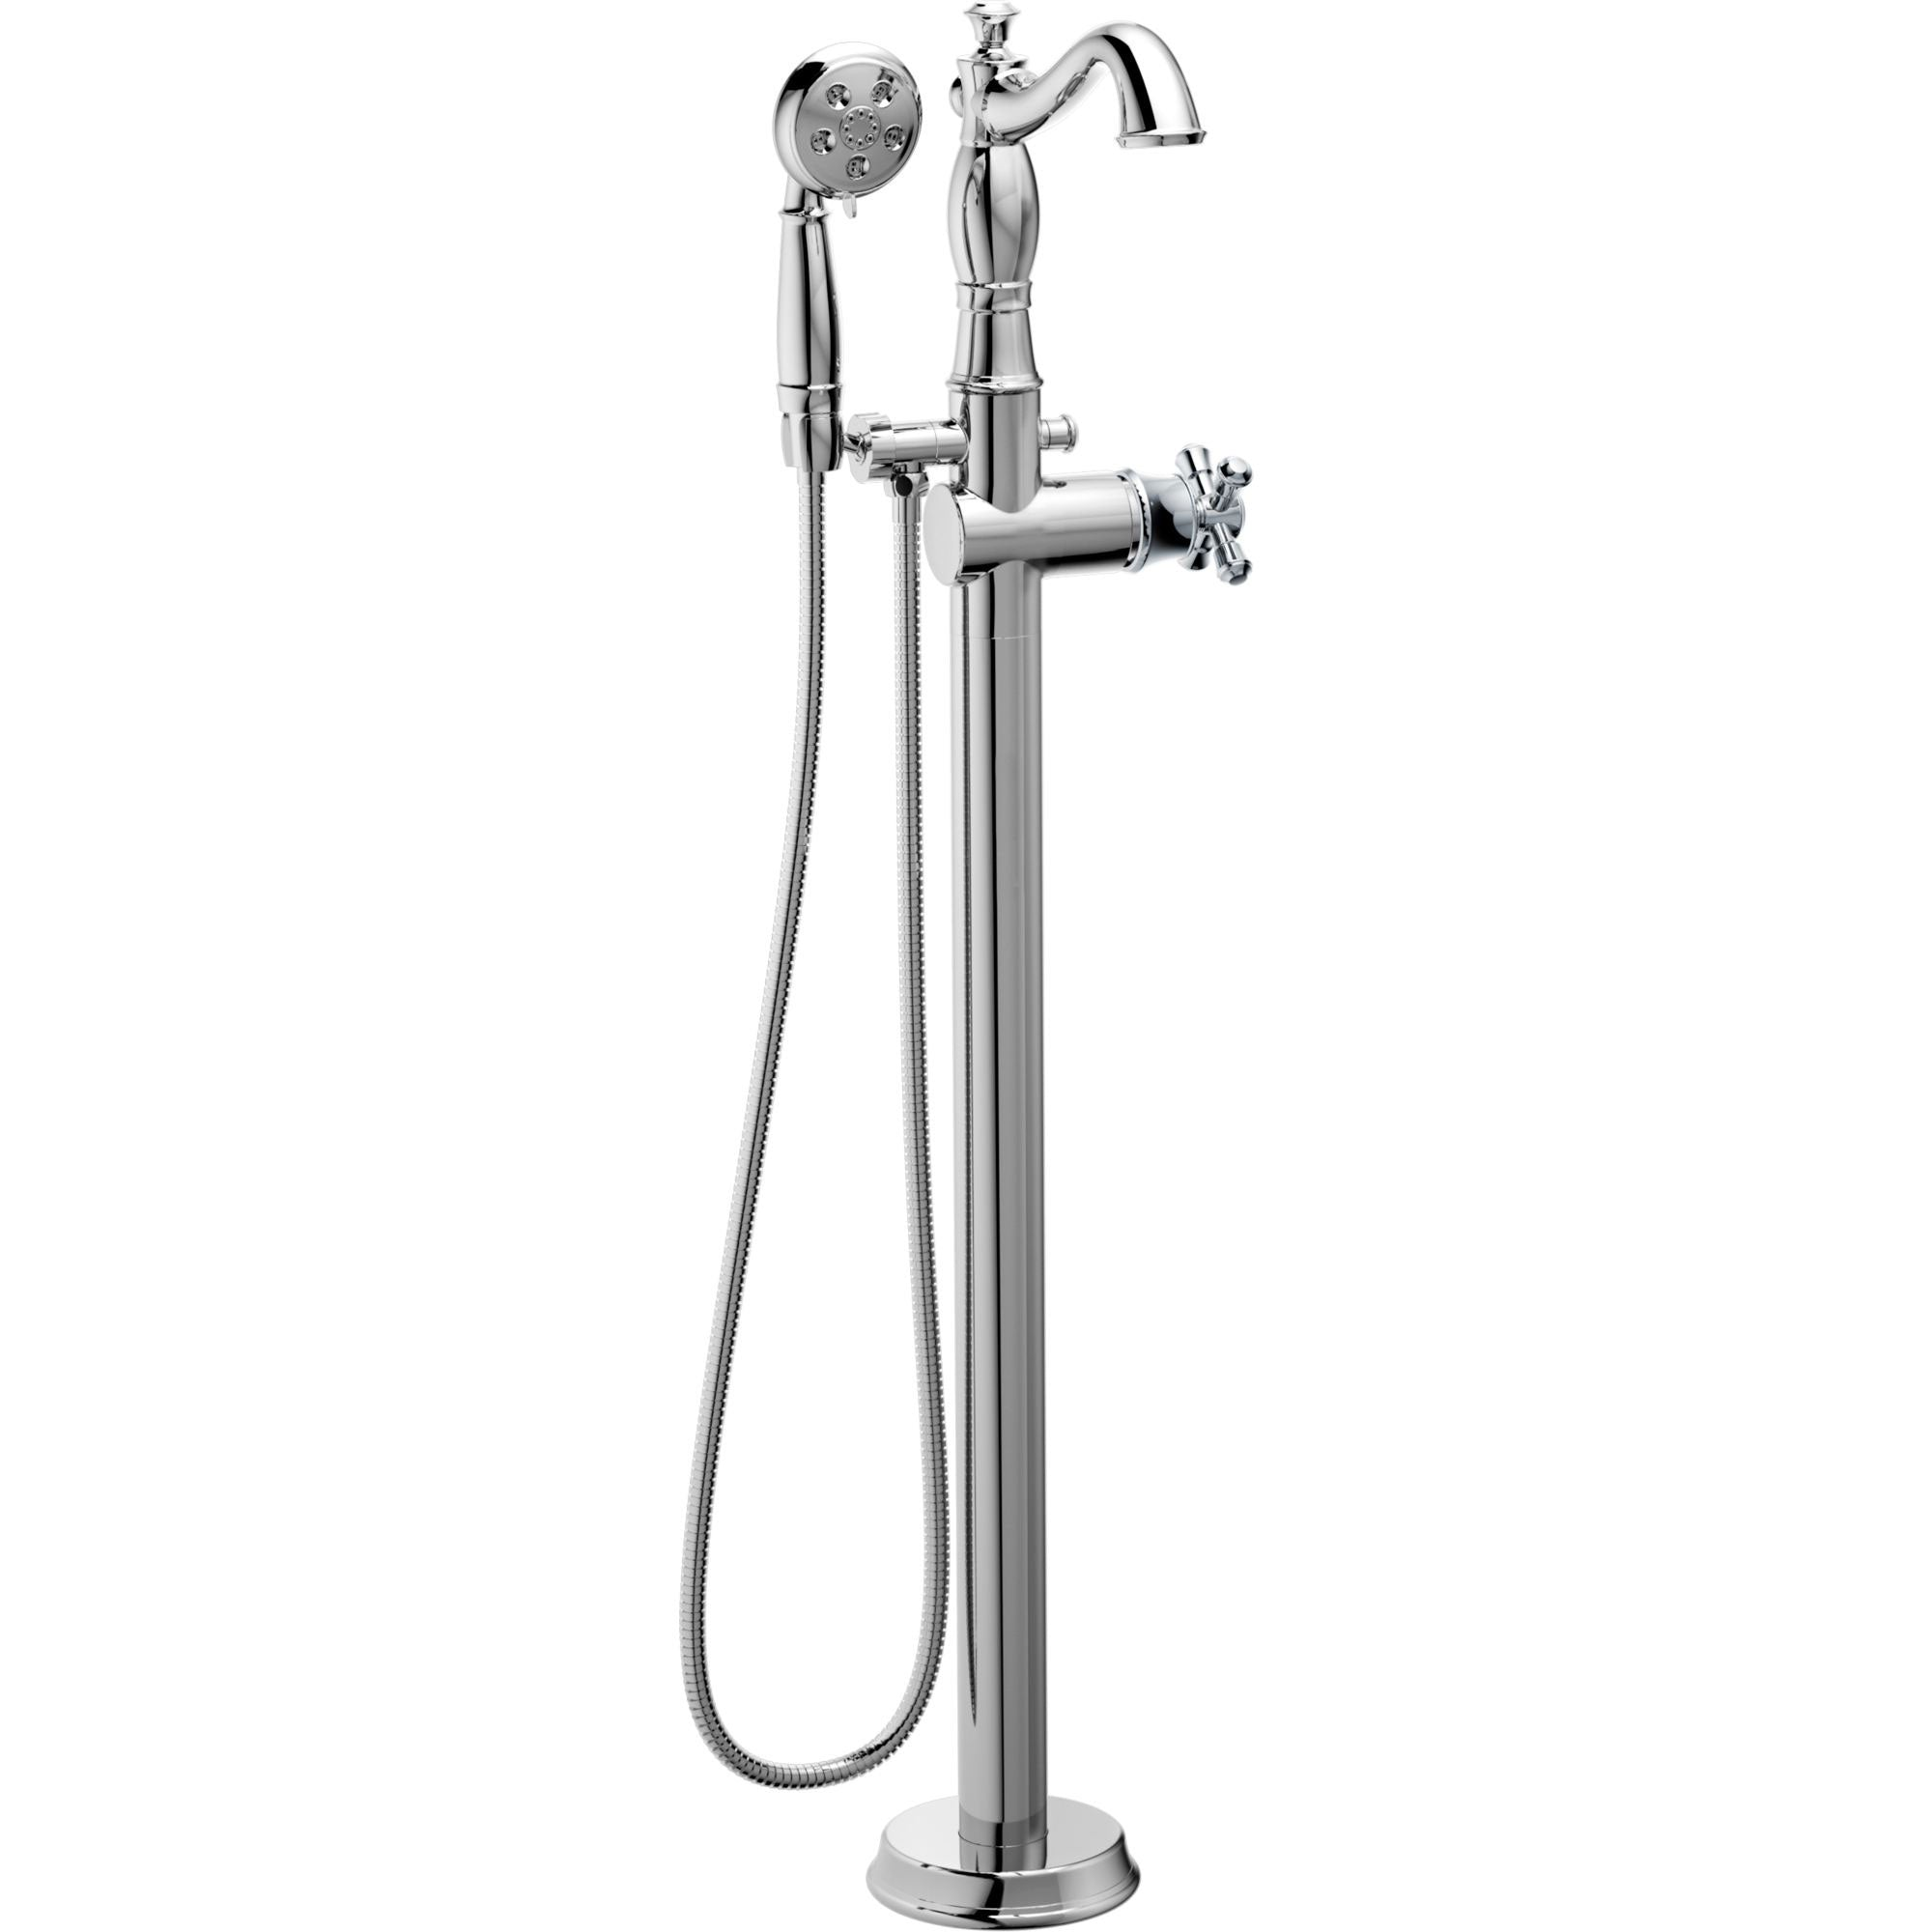 Delta Traditional Chrome Floor Mount Tub Filler Faucet with Hand Shower Spray INCLUDES Valve and Metal Cross Handle D1054V